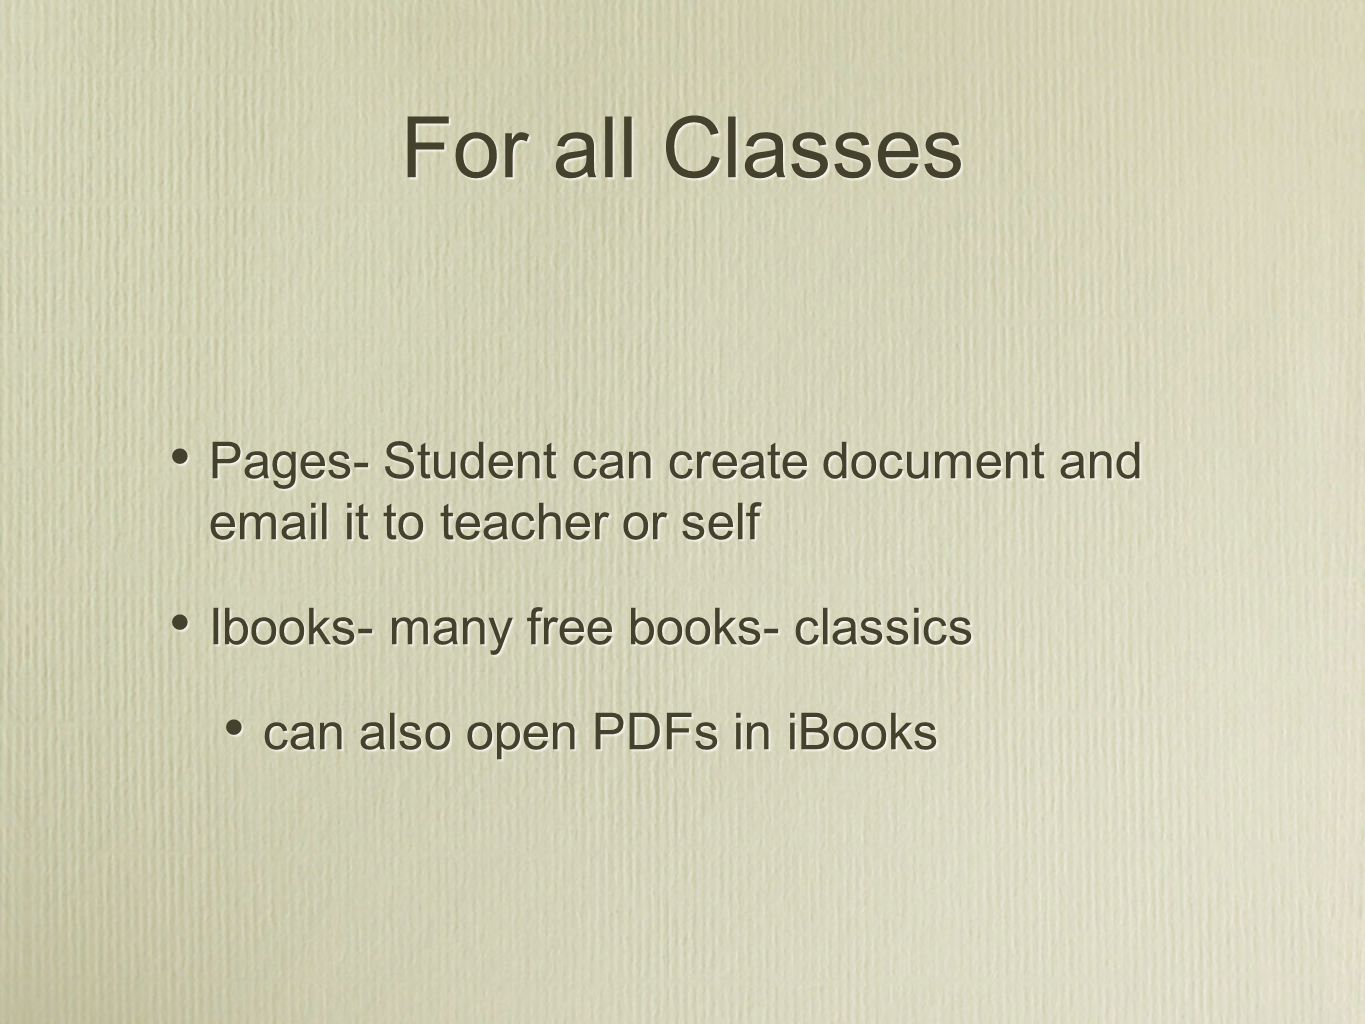 For all Classes Pages- Student can create document and email it to teacher or self Ibooks- many free books- classics can also open PDFs in iBooks Pages- Student can create document and email it to teacher or self Ibooks- many free books- classics can also open PDFs in iBooks